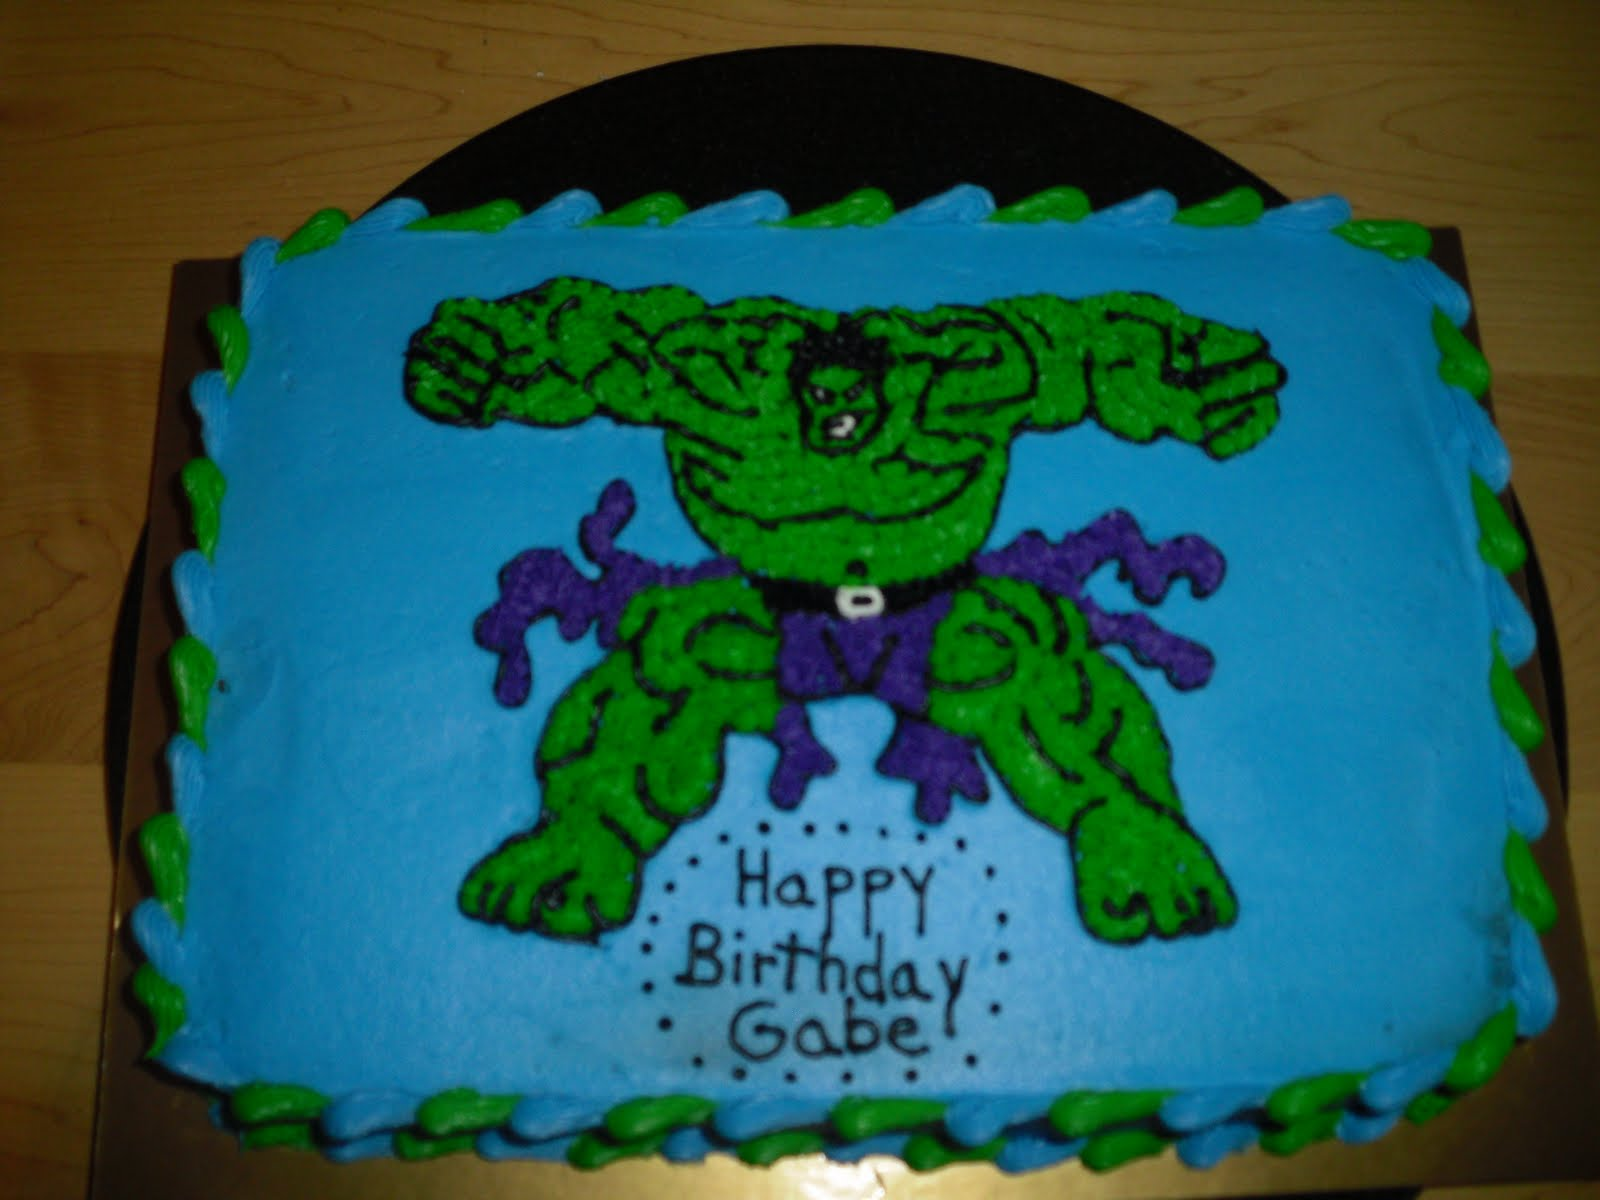 Cake Designs by Steph: Incredible Hulk cake!